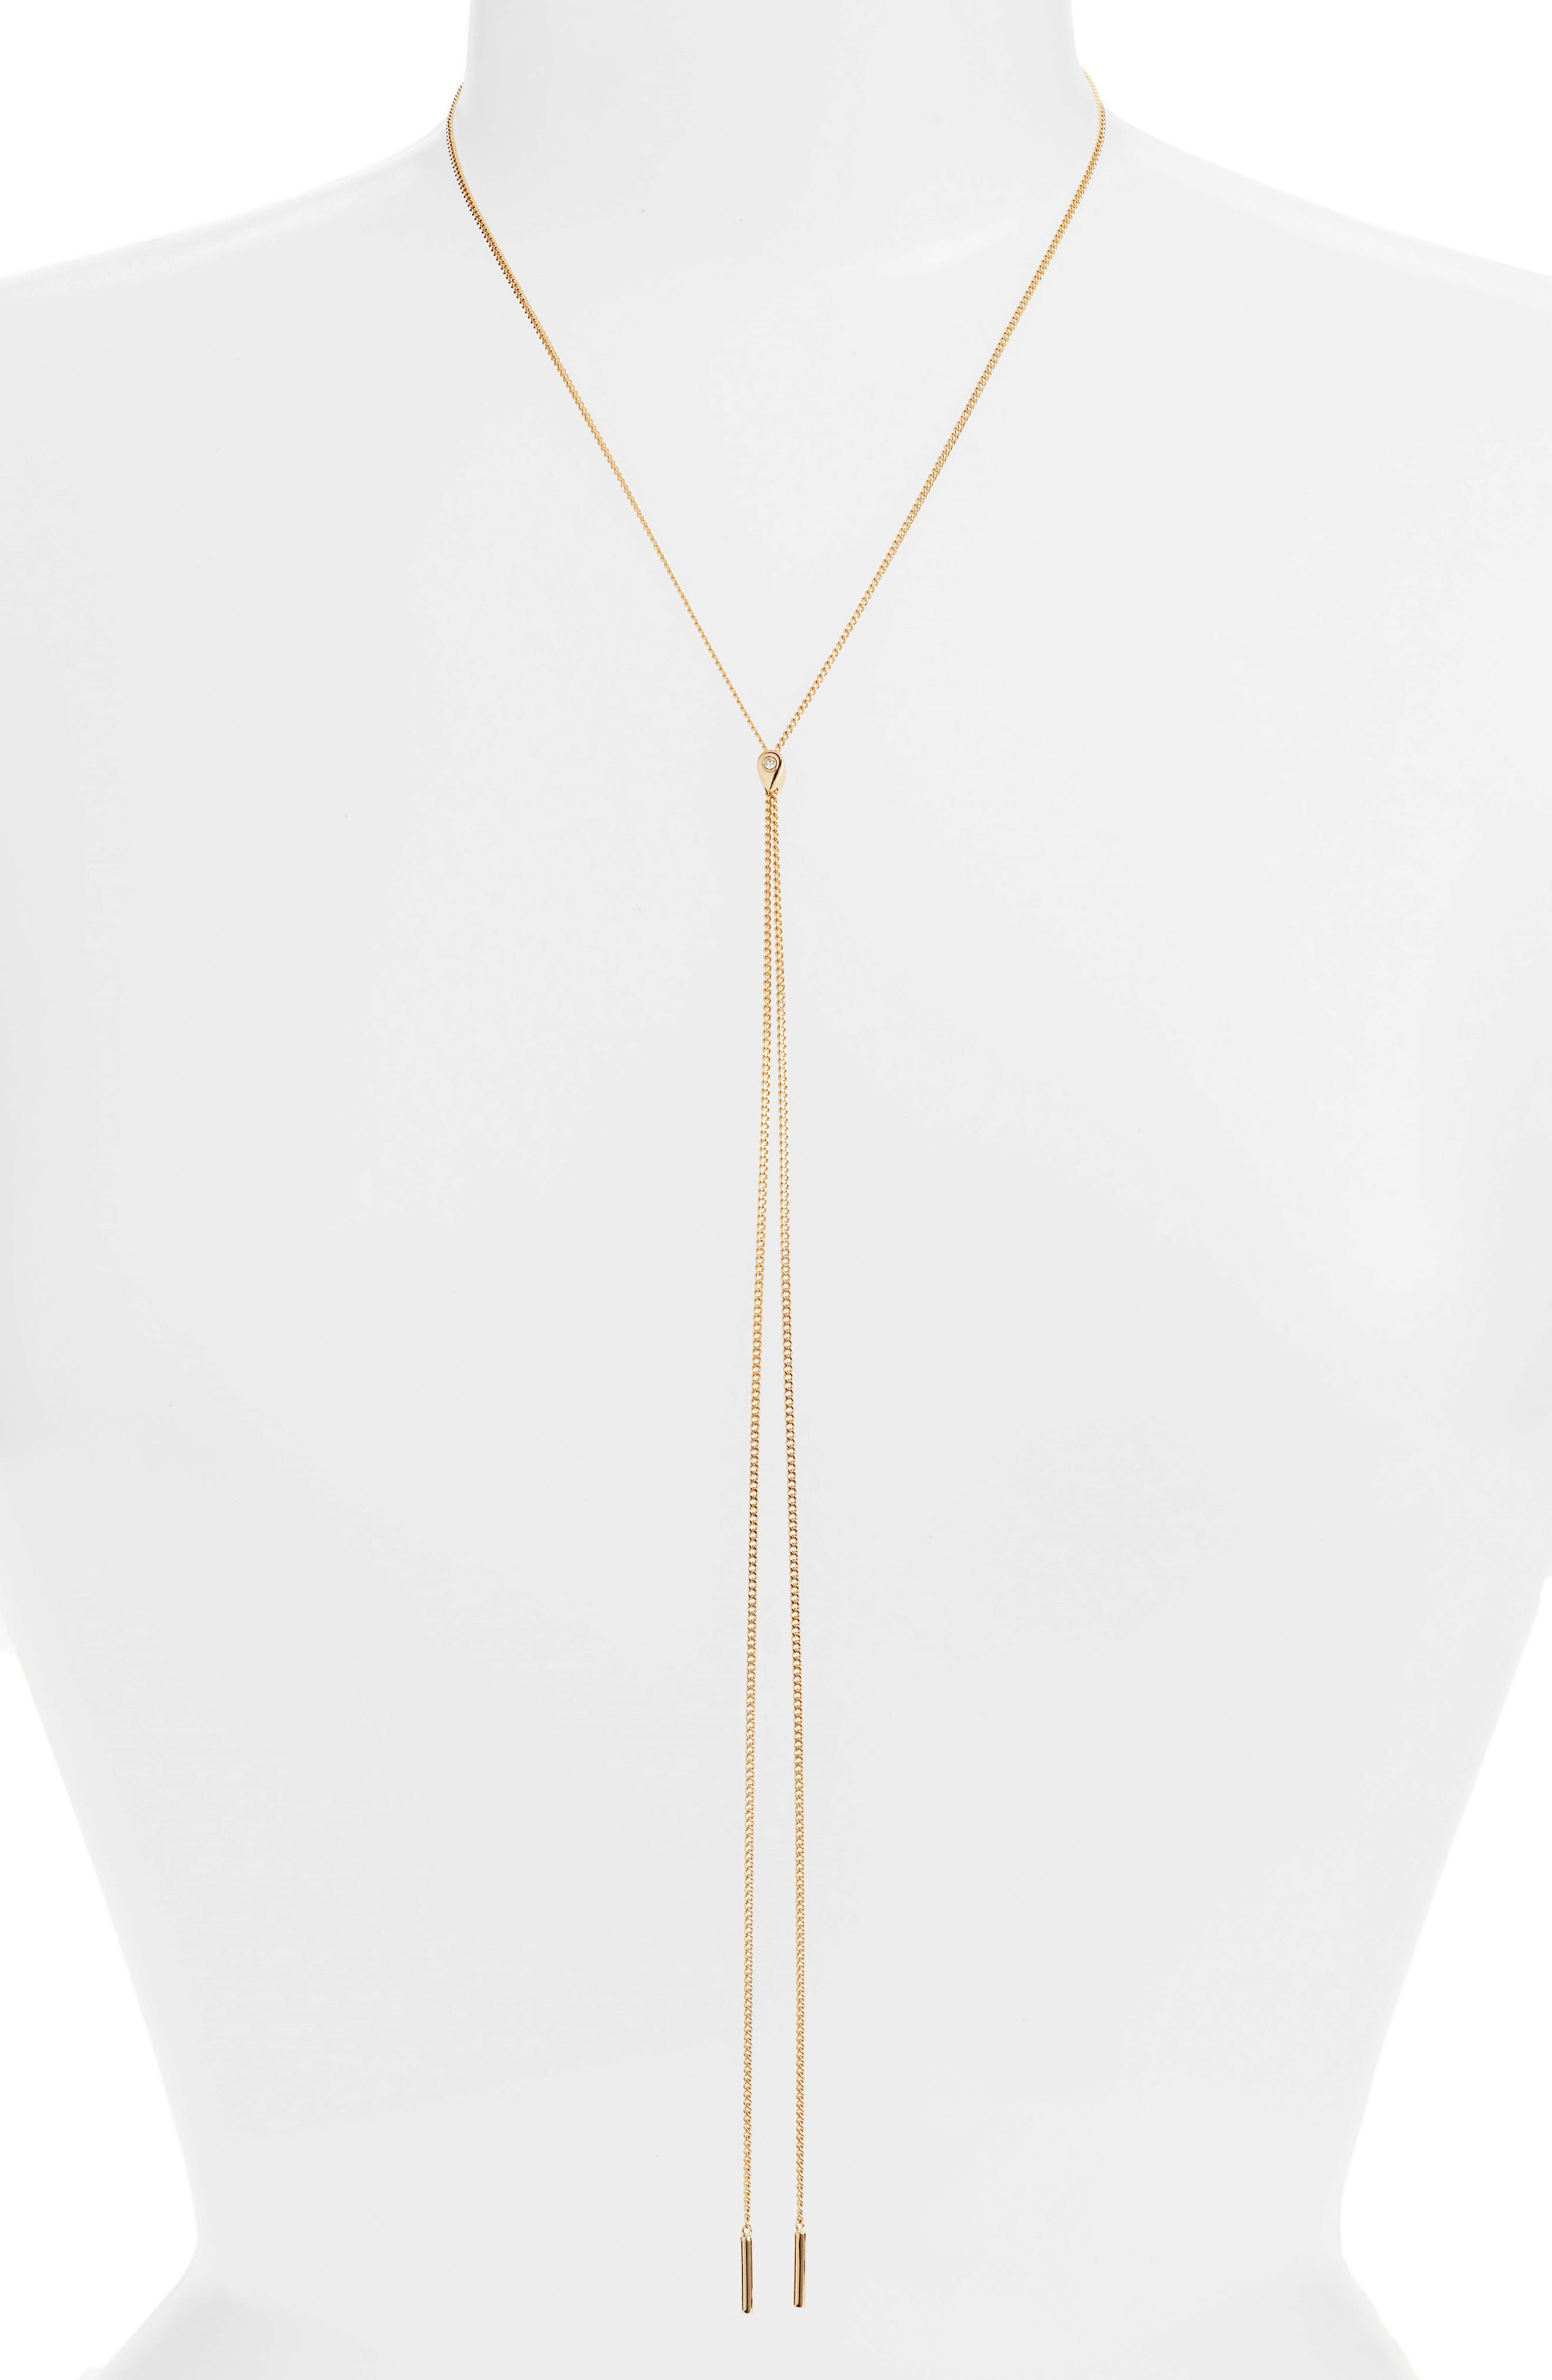 Jules Smith Dewdrop Lariat Necklace